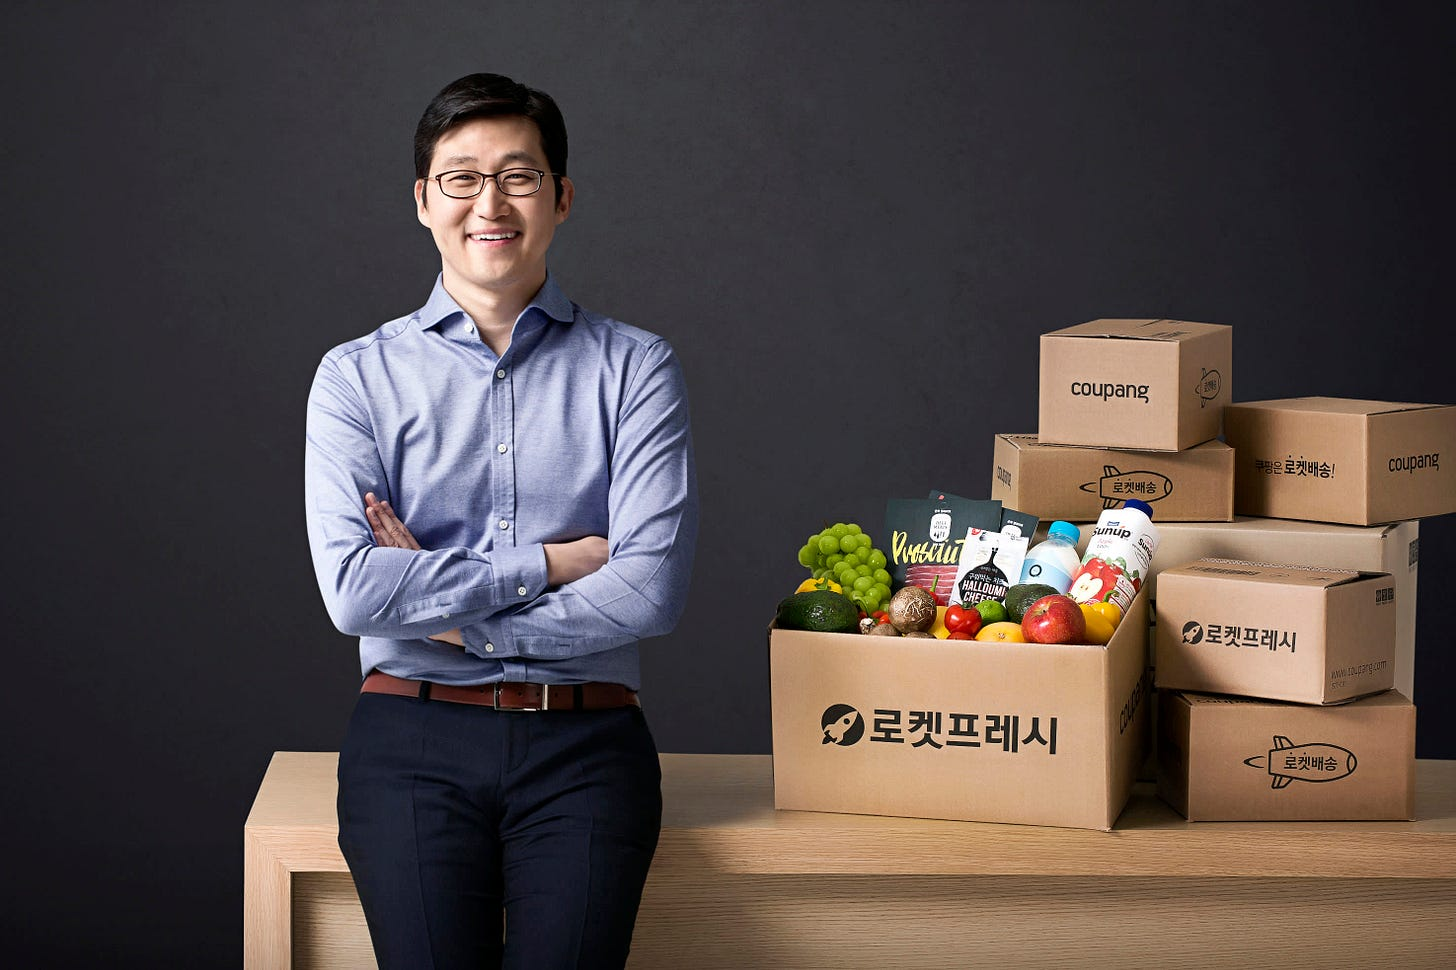 Coupang crushed Amazon to become South Korea's biggest online retailer